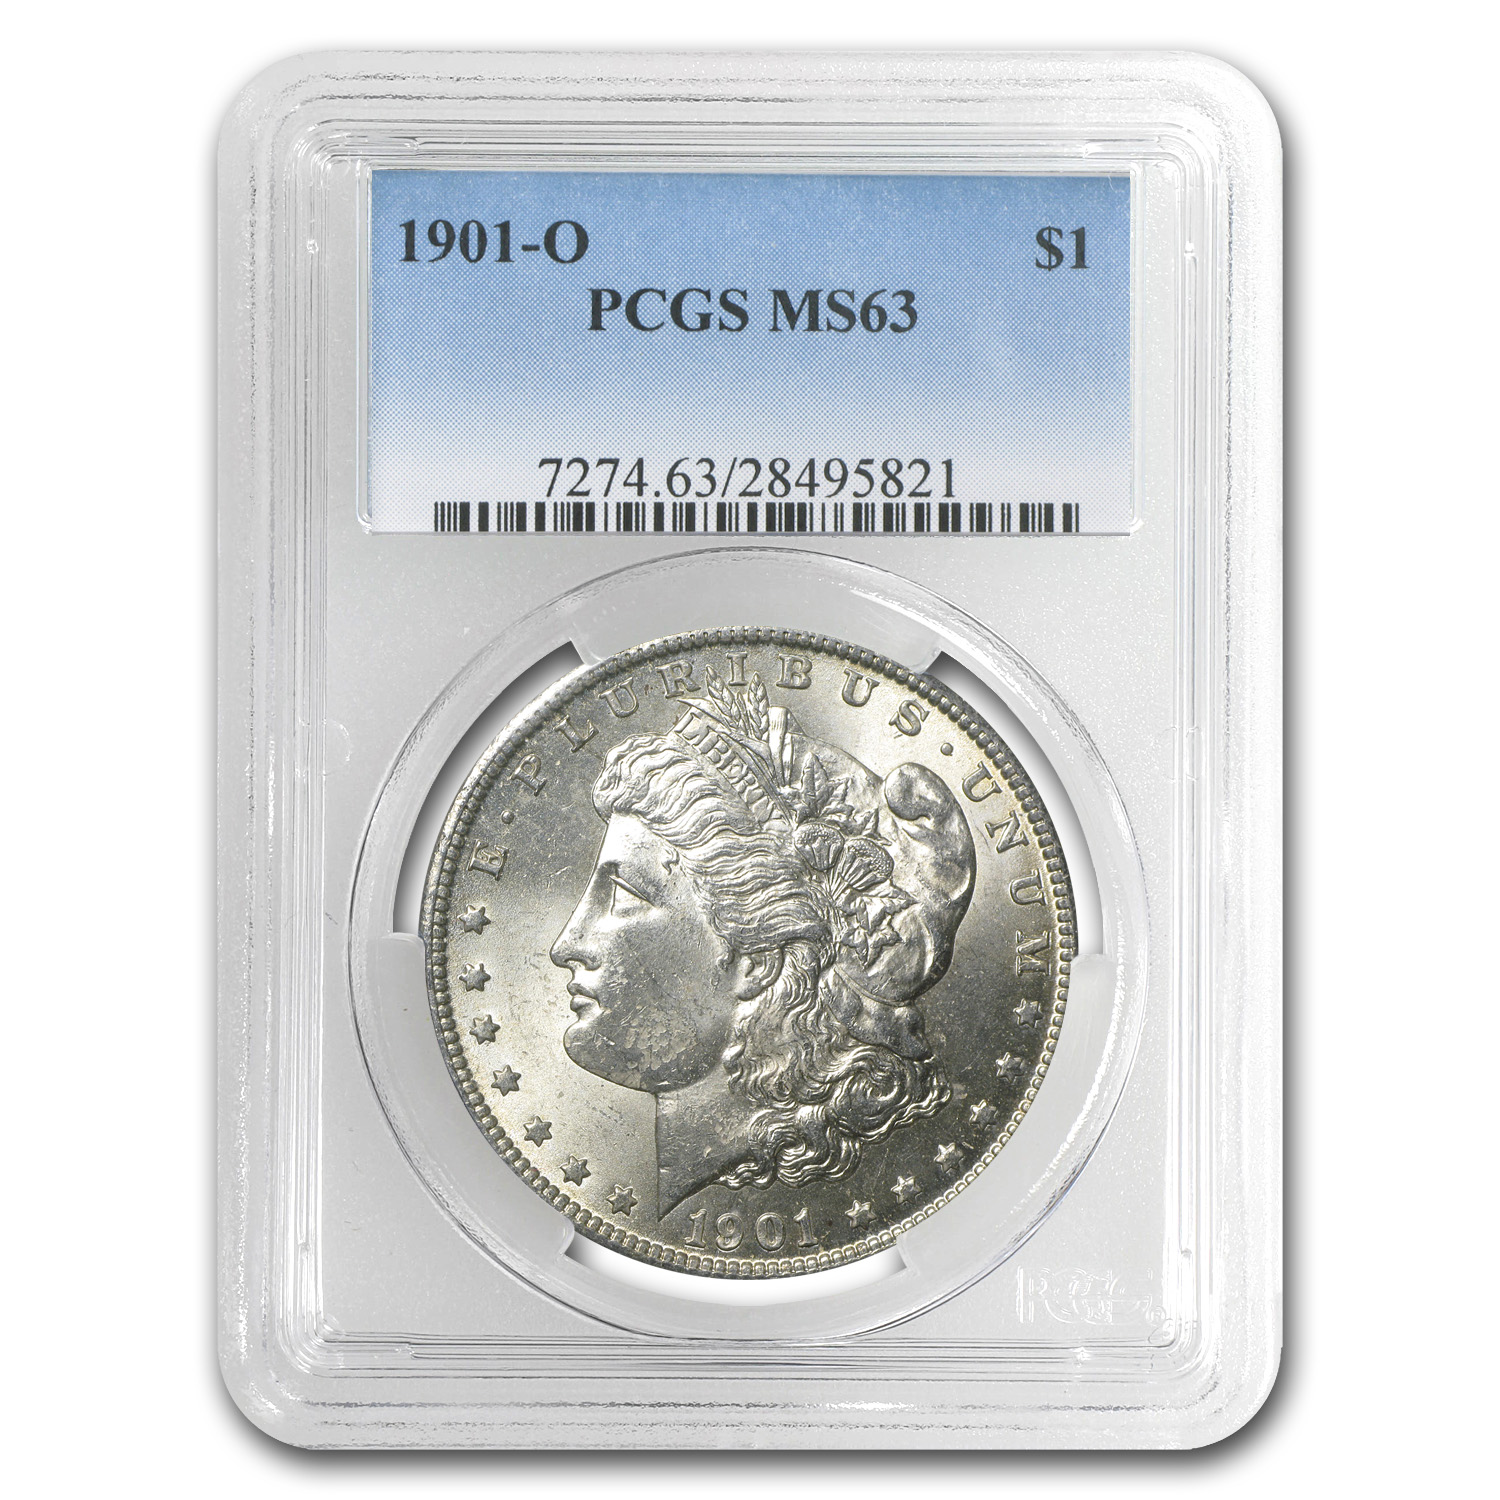 1901-O Morgan Dollar - MS-63 PCGS